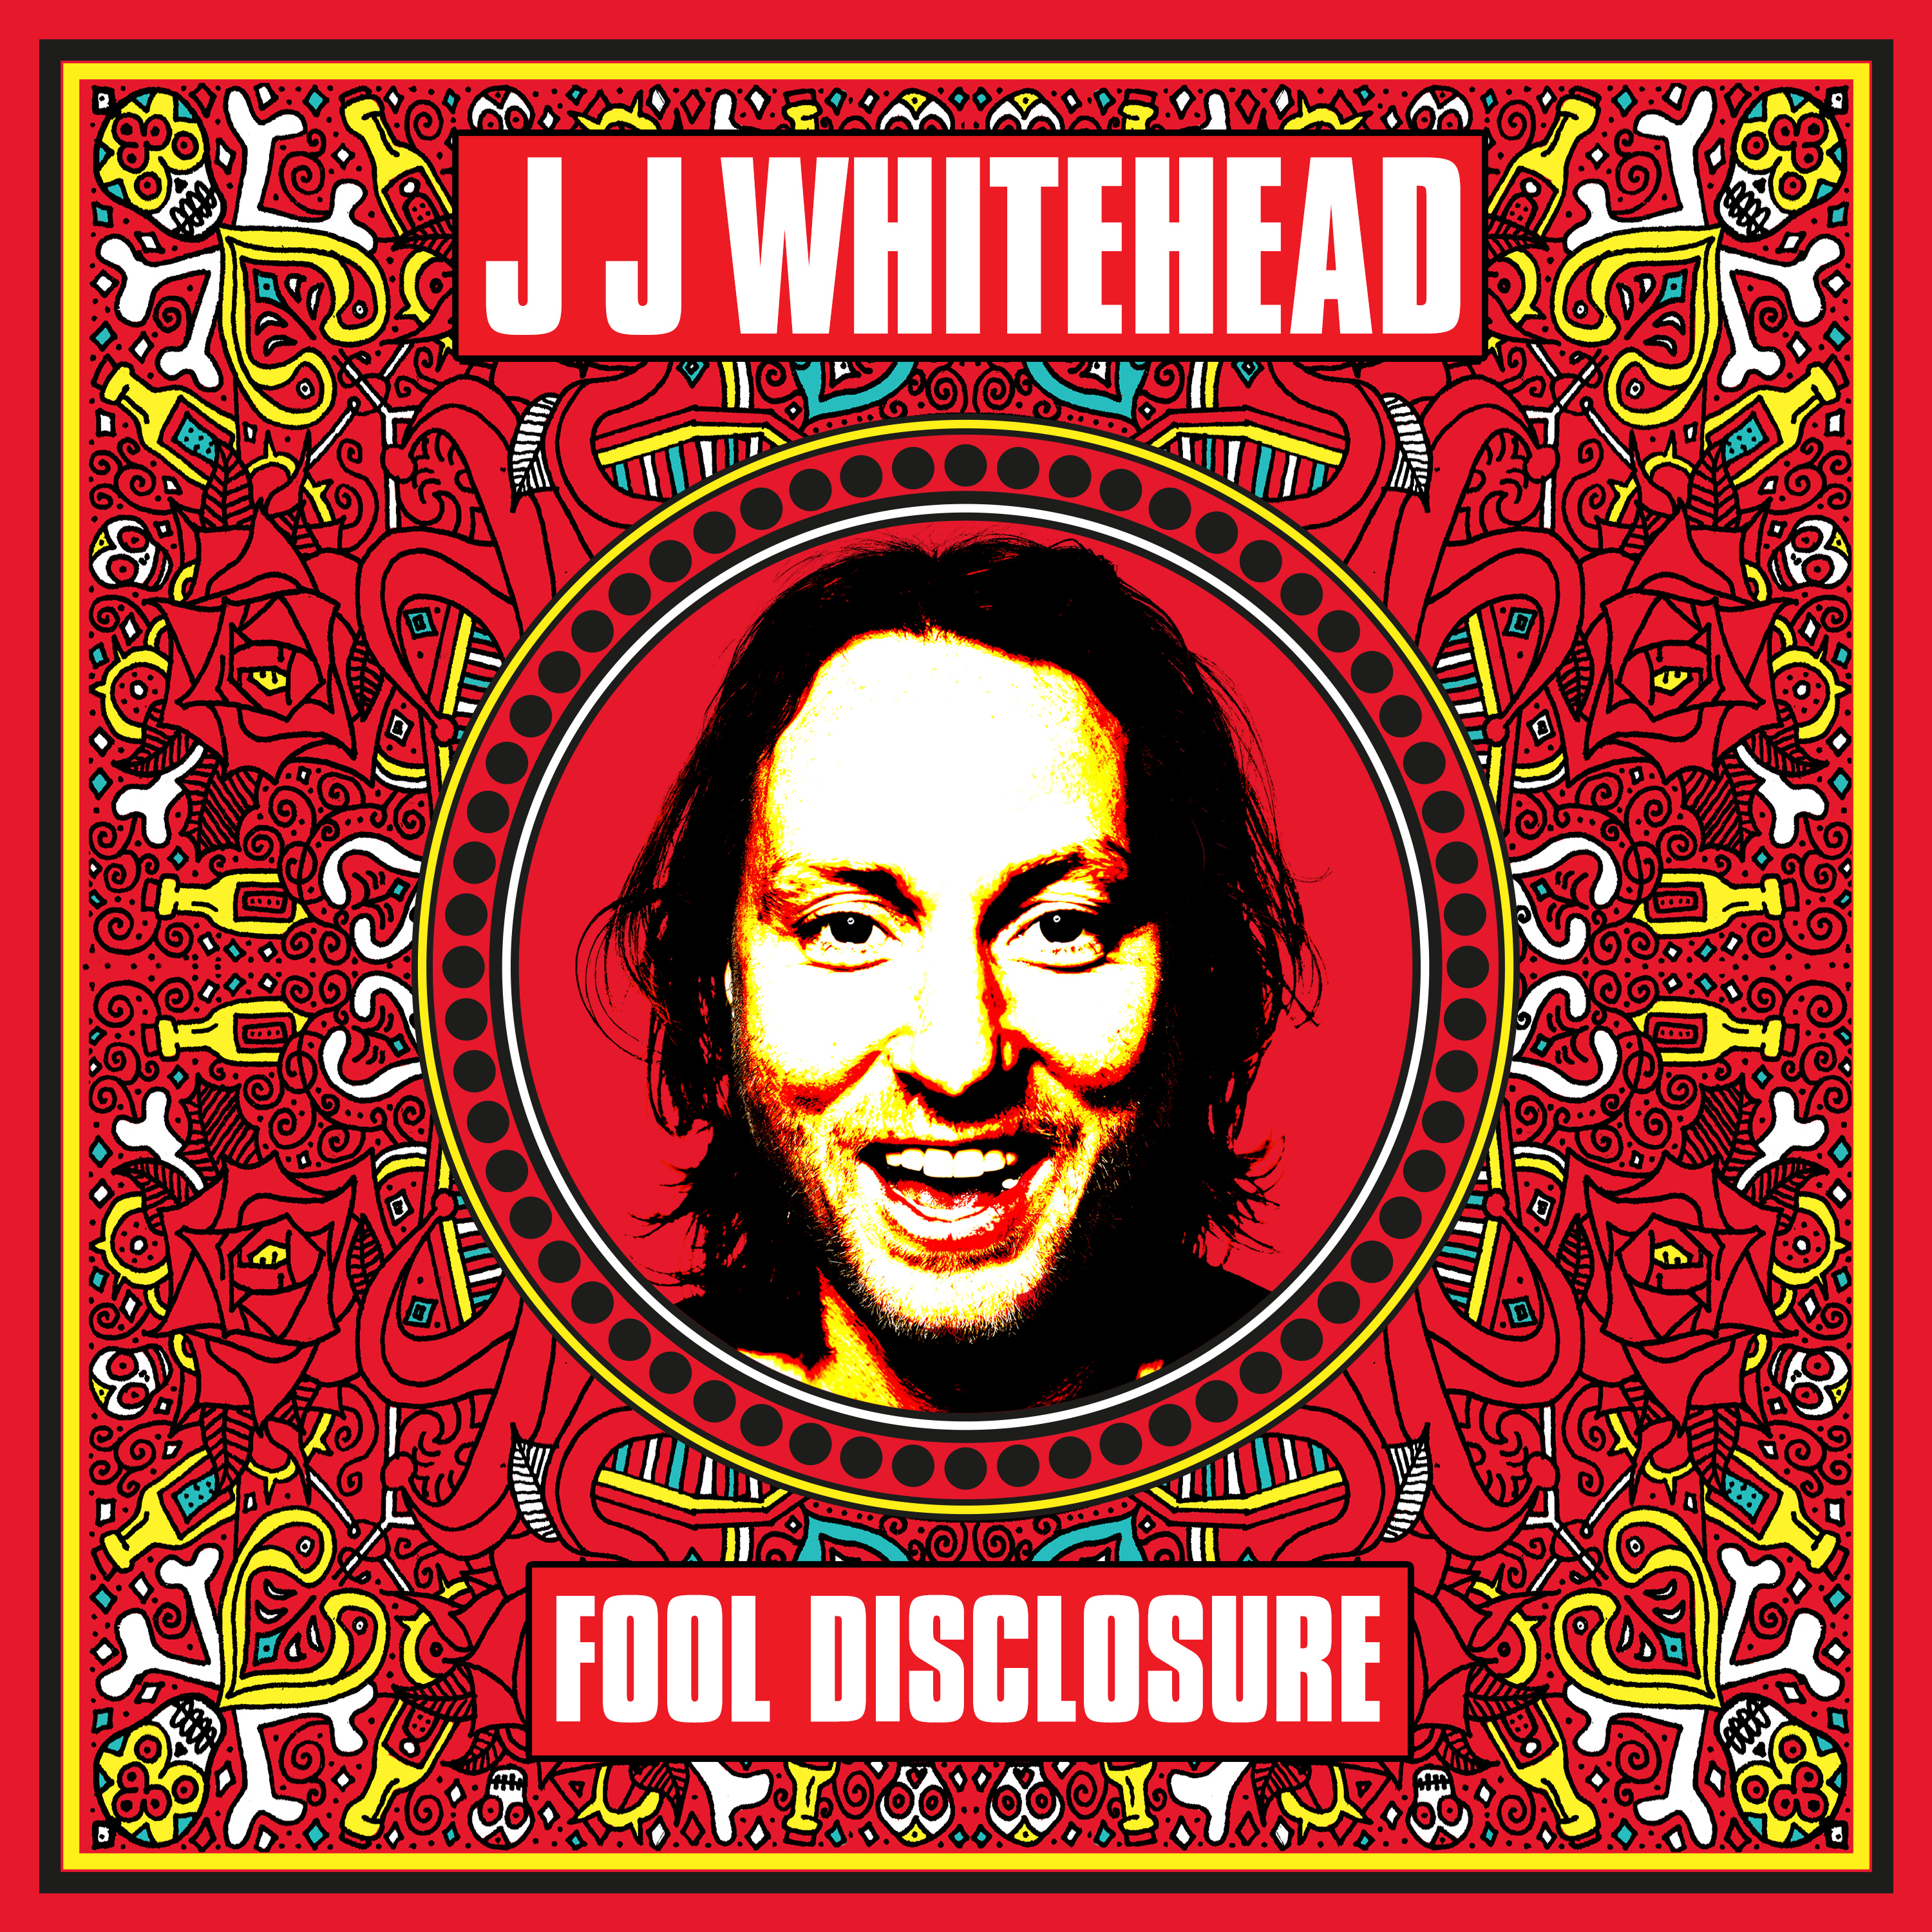 COMEDY NEWS: J.J. Whitehead's Fool Disclosure Out Nov. 18 on Stand Up! Records